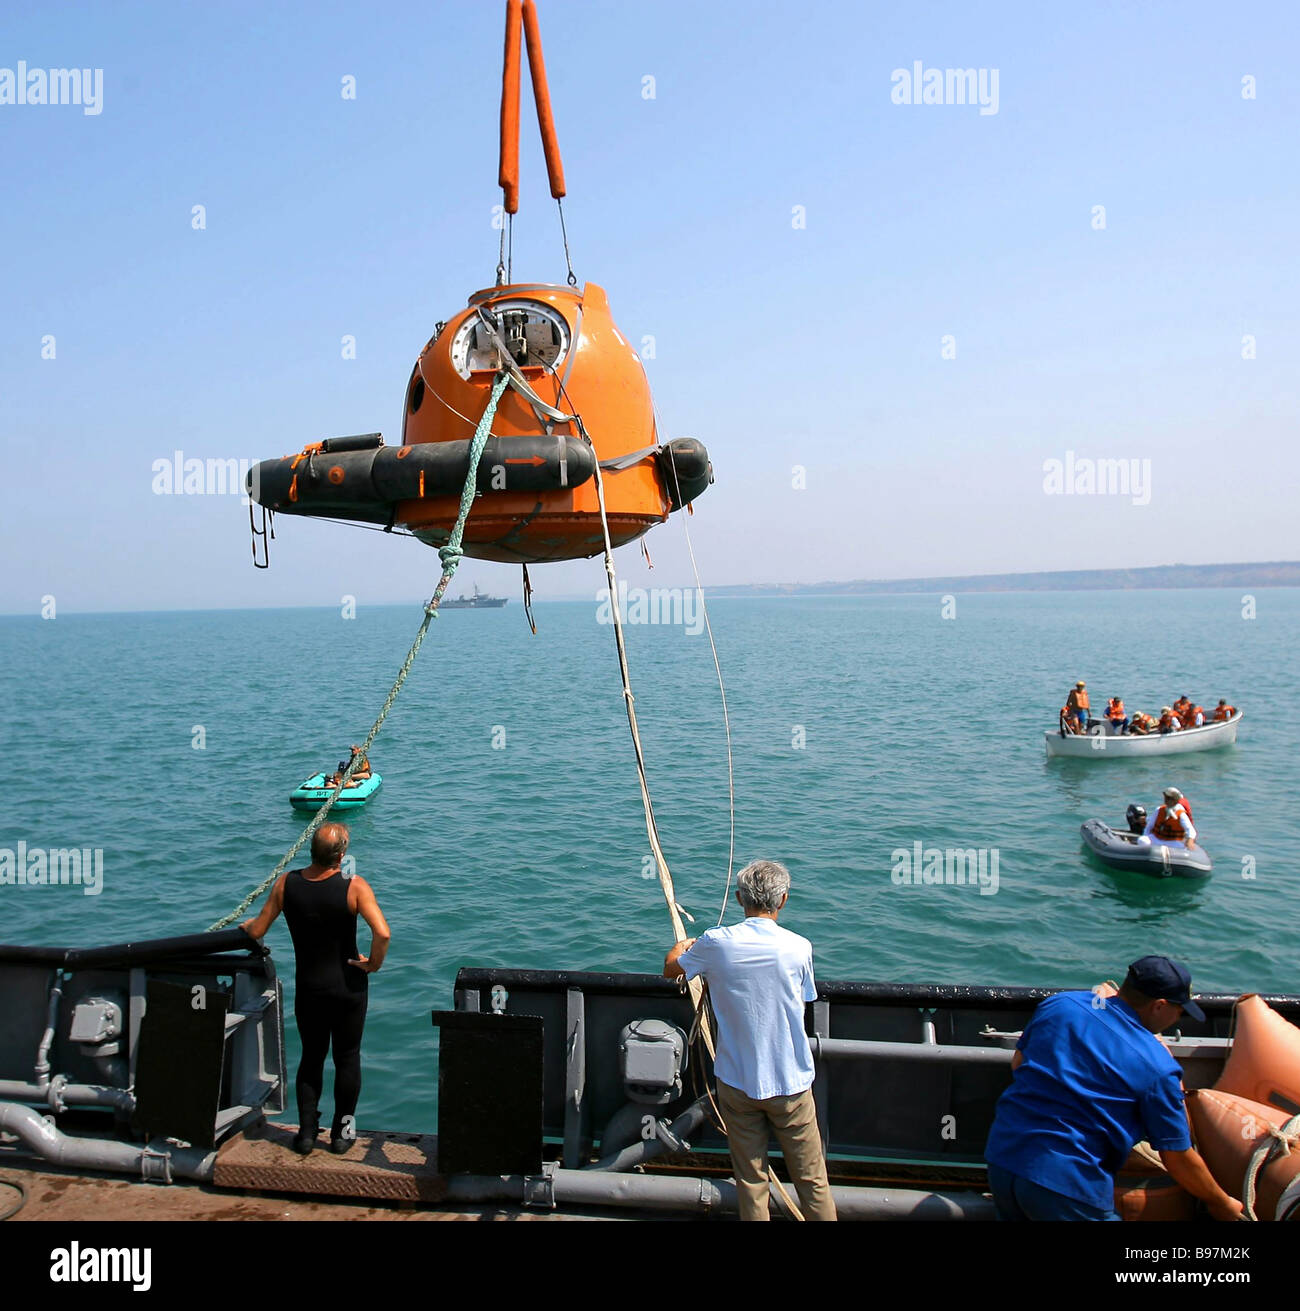 The Soyuz descent vehicle is lowered into water as international space crews are drilling emergency splashdown in - Stock Image